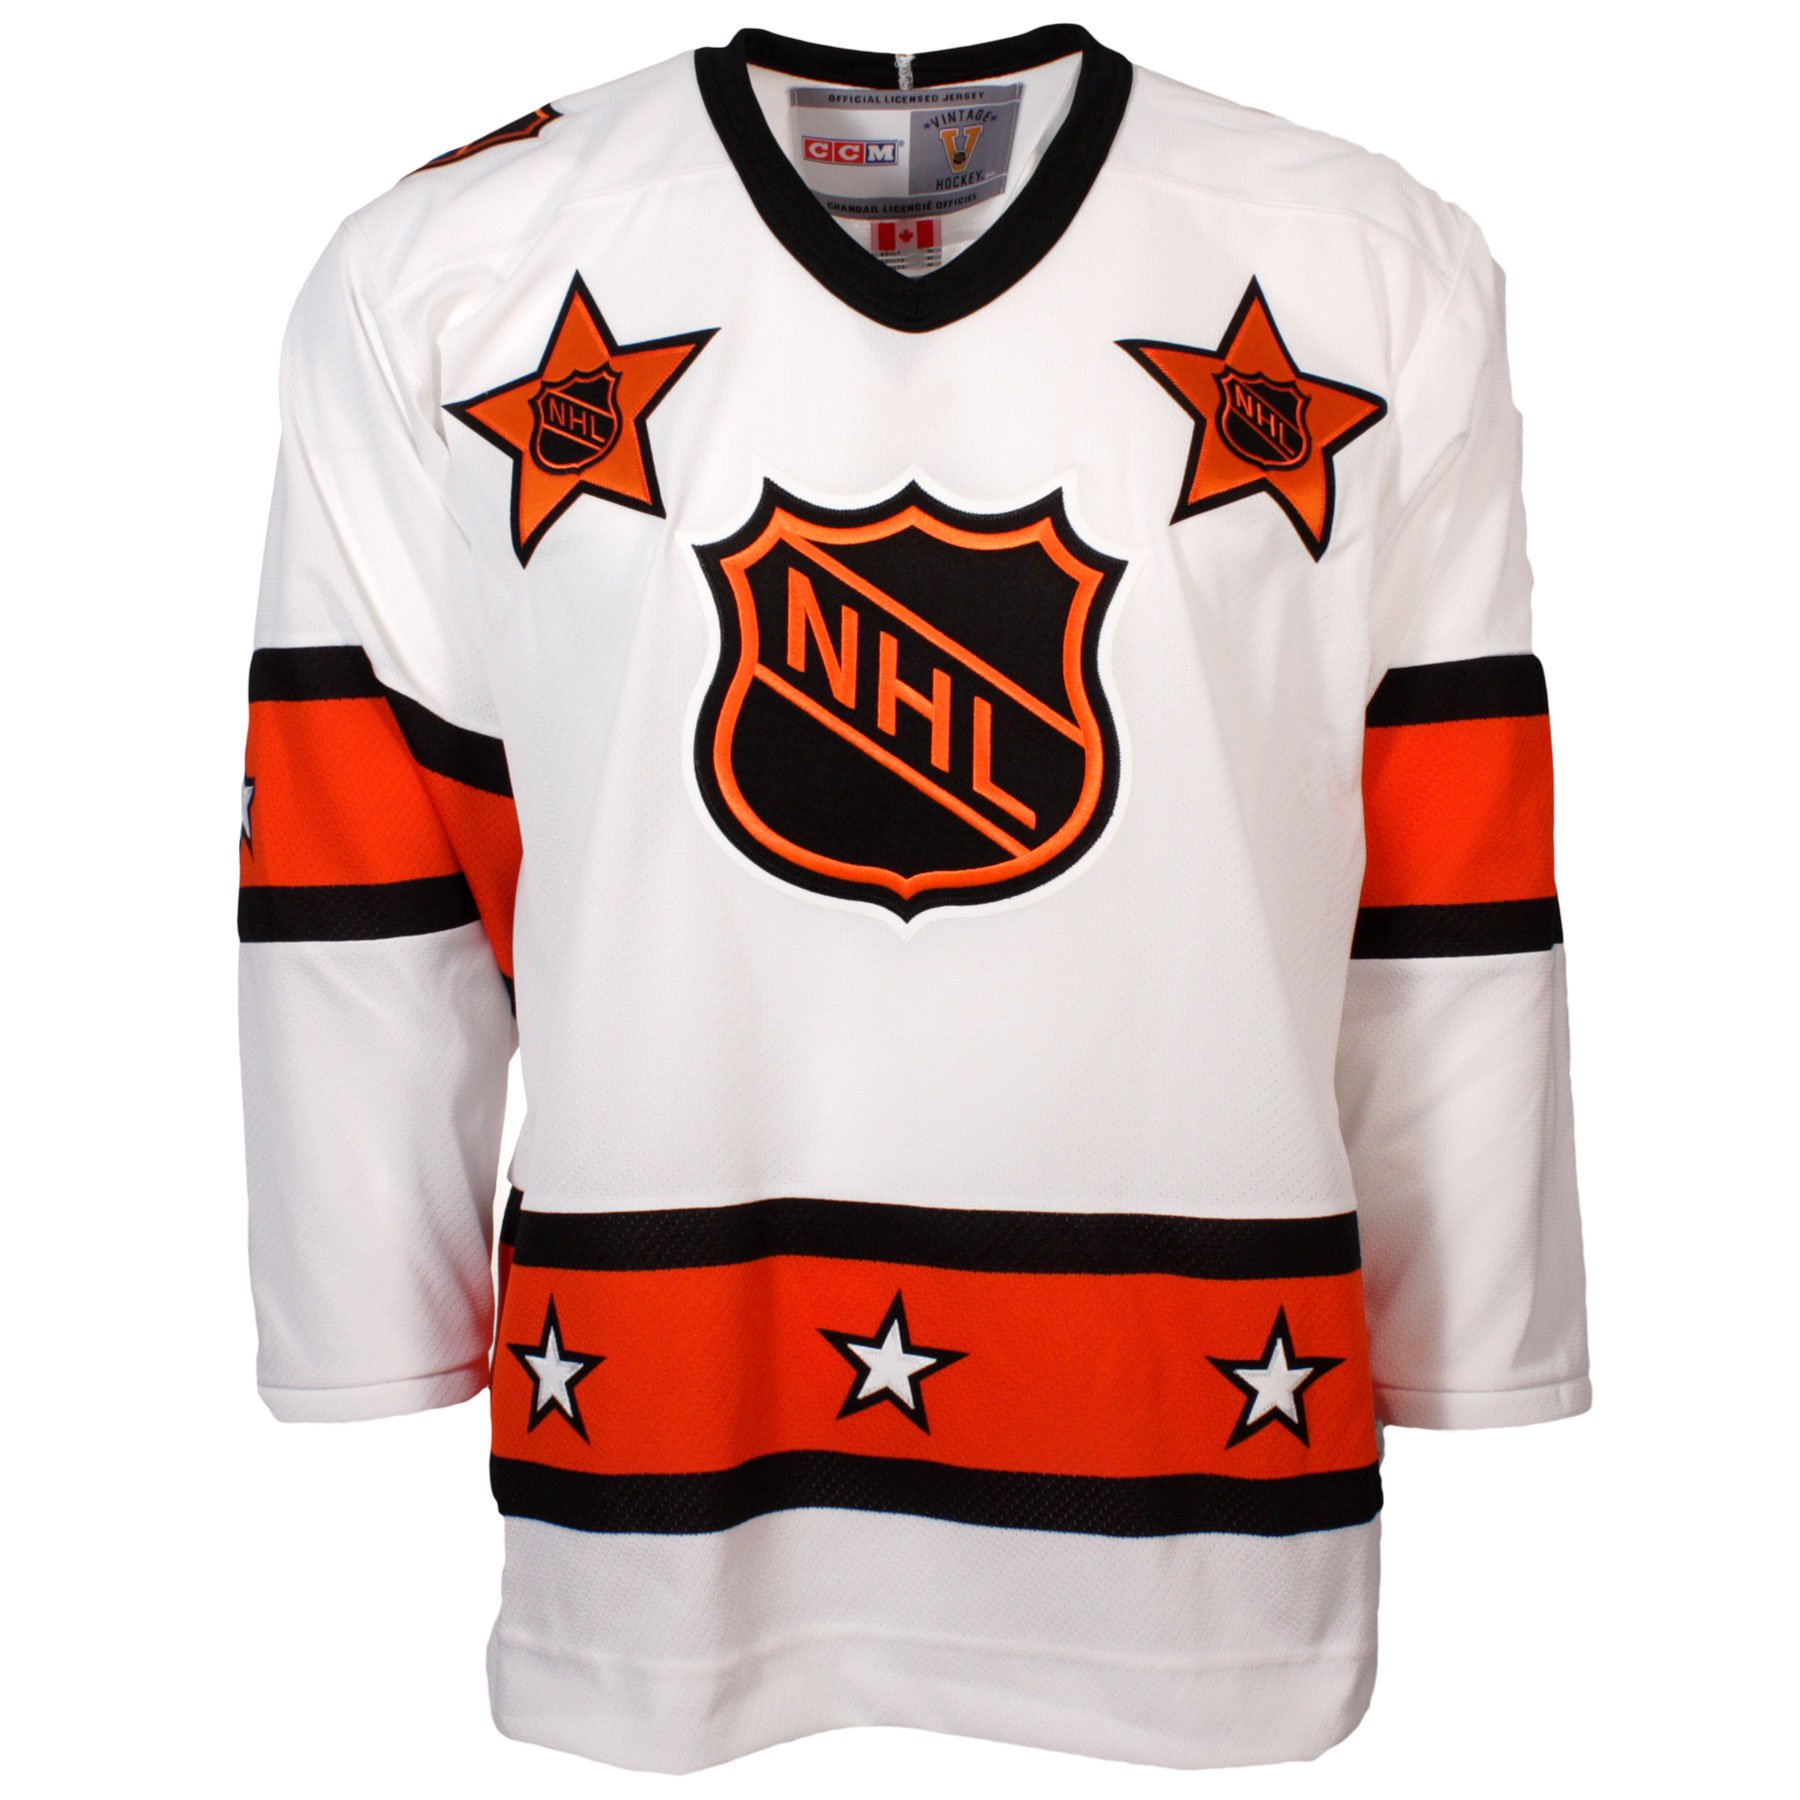 timeless design 084c0 c761c All Nhl Jersey Wales Replica Star - Vintage 1981 Conference ...